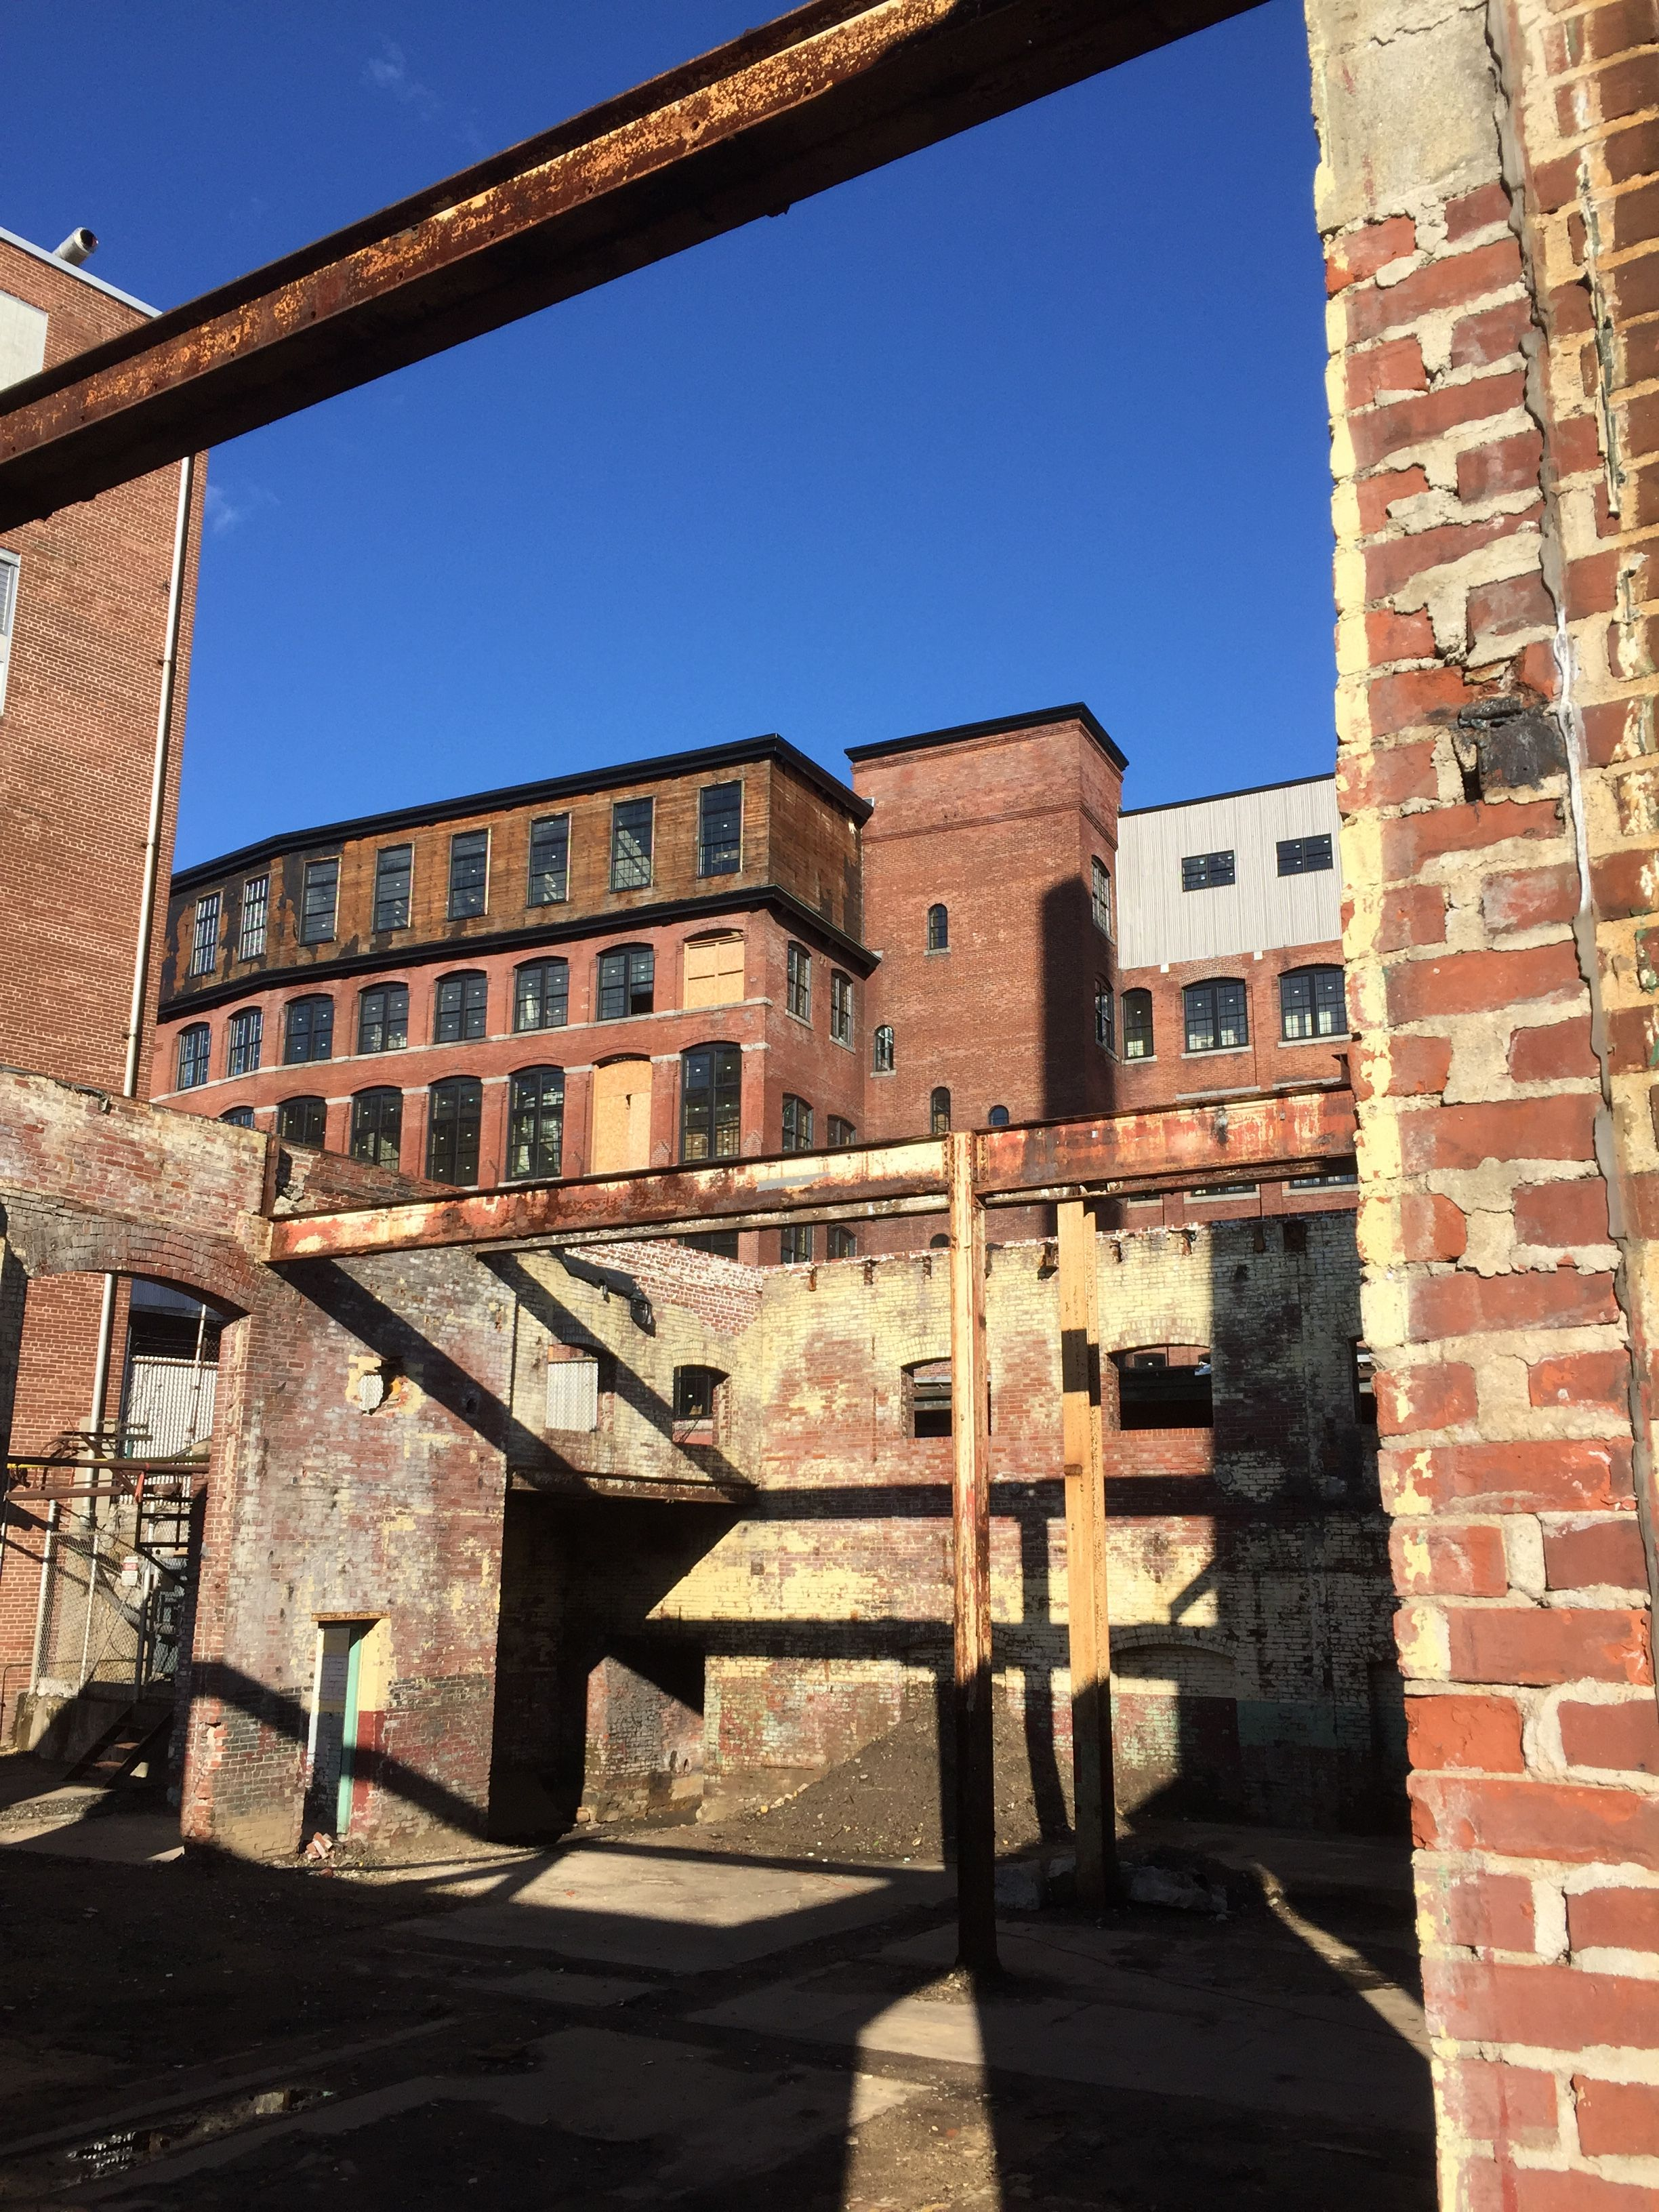 Photos of Mill buildings Brewery, Photo, Local beer